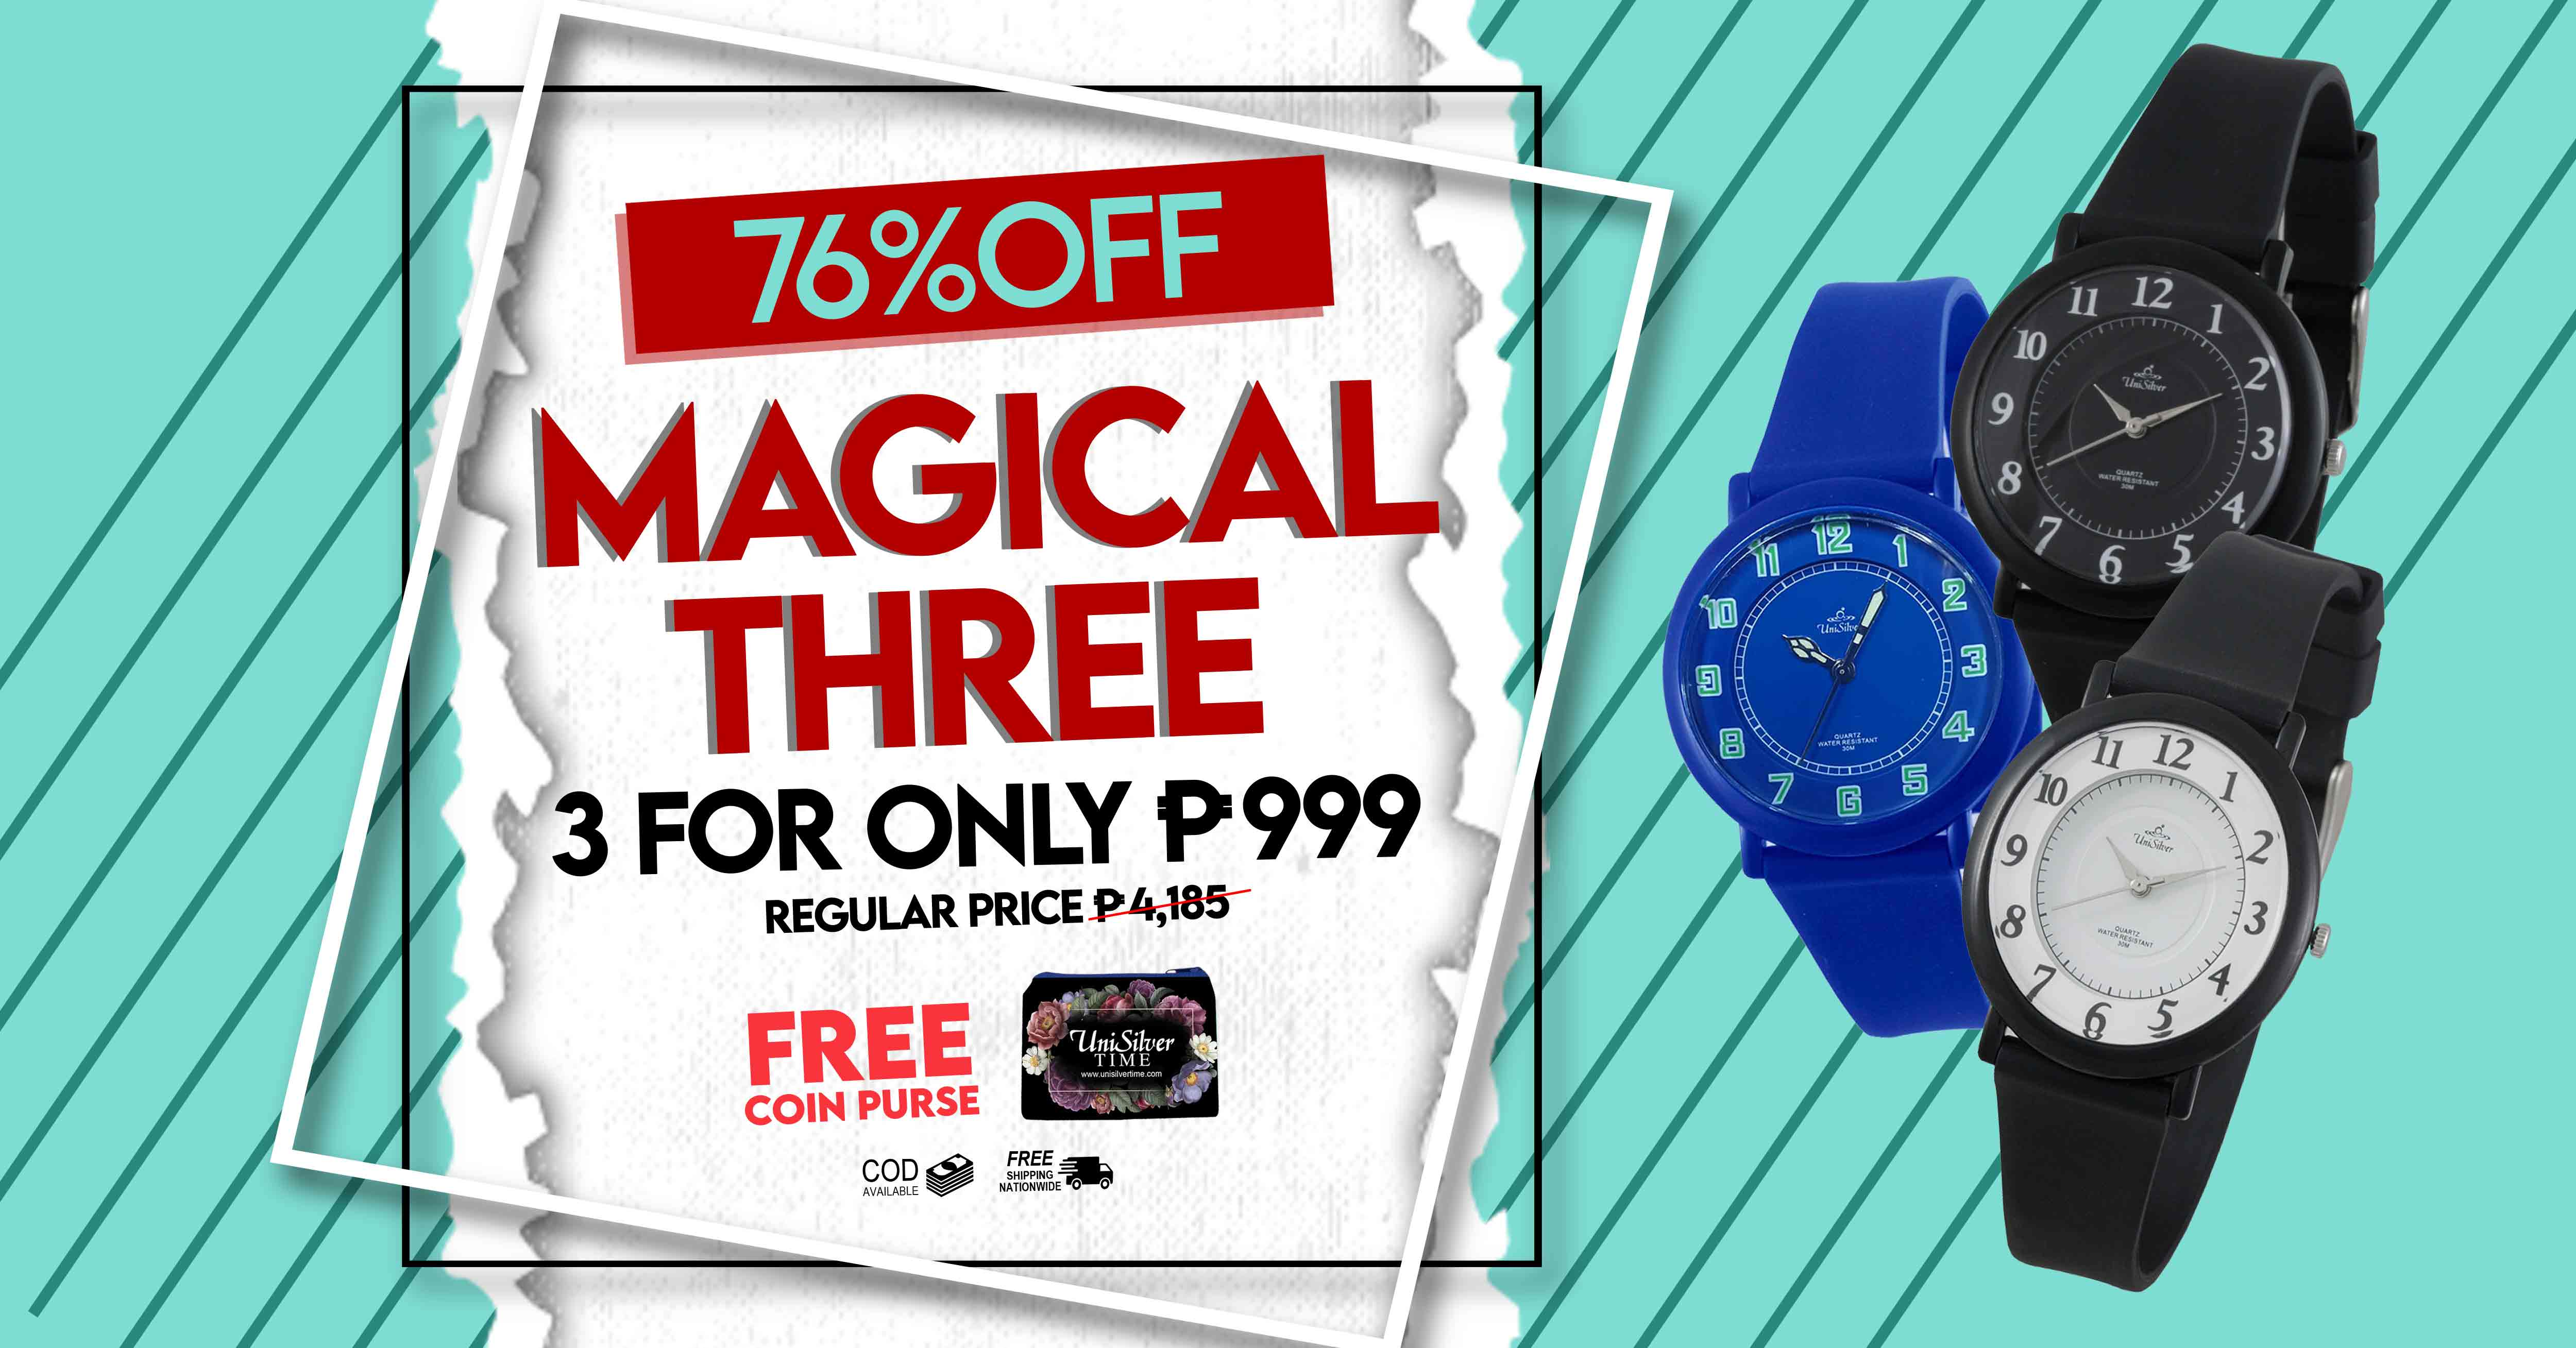 Watches with the Magical Three Deal from UniSilver TIME!  Just pick any 3 for P999.  That's 76% off the regular price. There are 8 colors to choose from.  Free shipping nationwide and cash on delivery option is available.  Also, get a free coin purse.  This promo is only available online http://bit.ly/306nBTn  Hurry and order now!